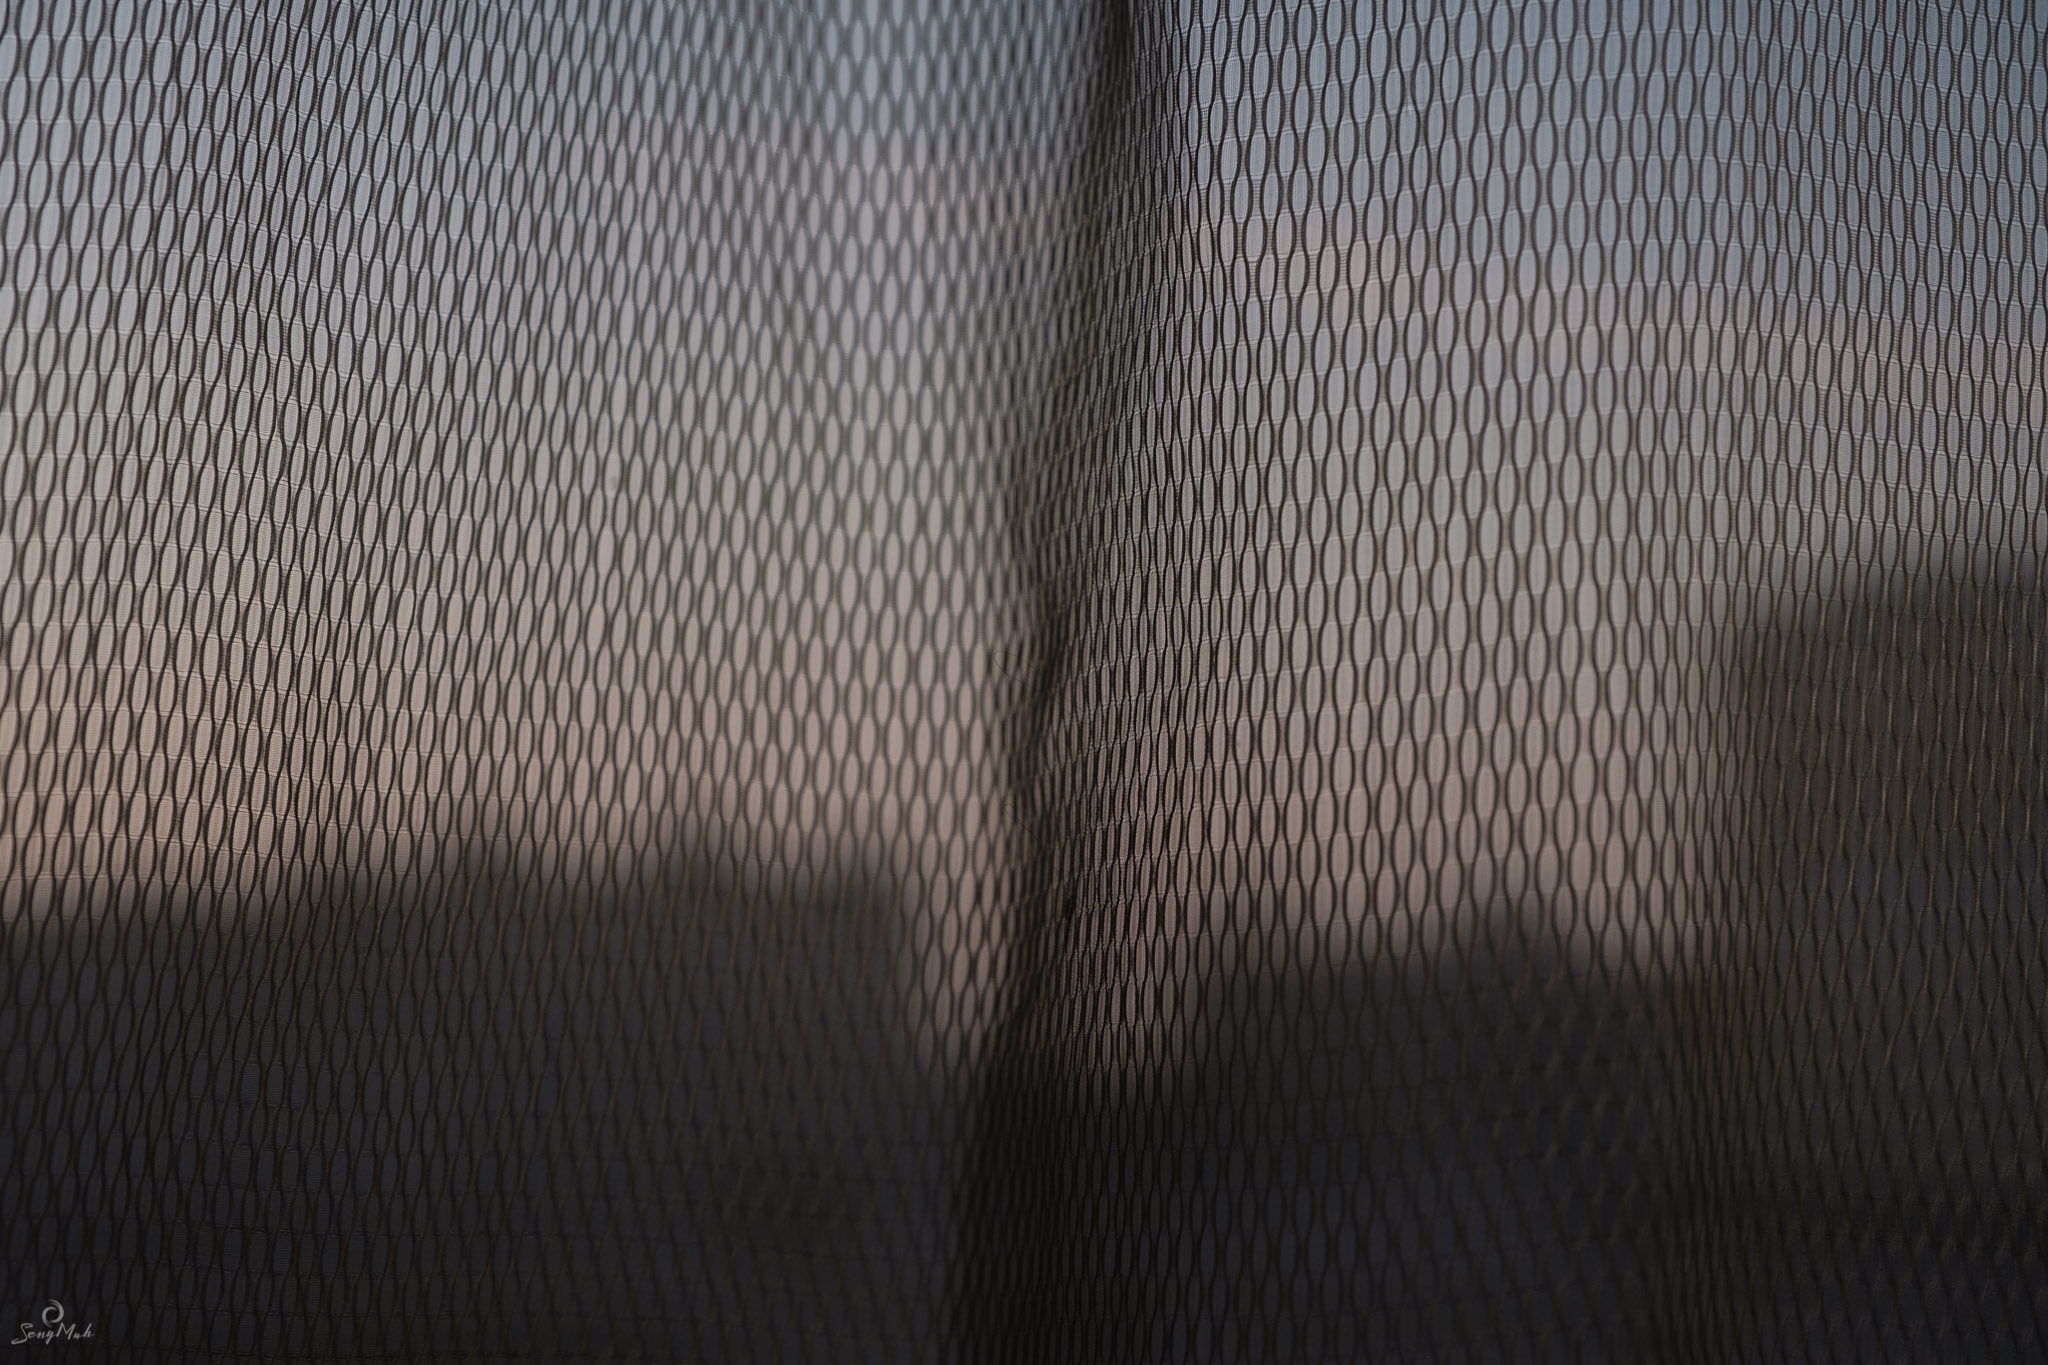 Even bedroom curtains make interesting subjects when you celebrate the Every Day